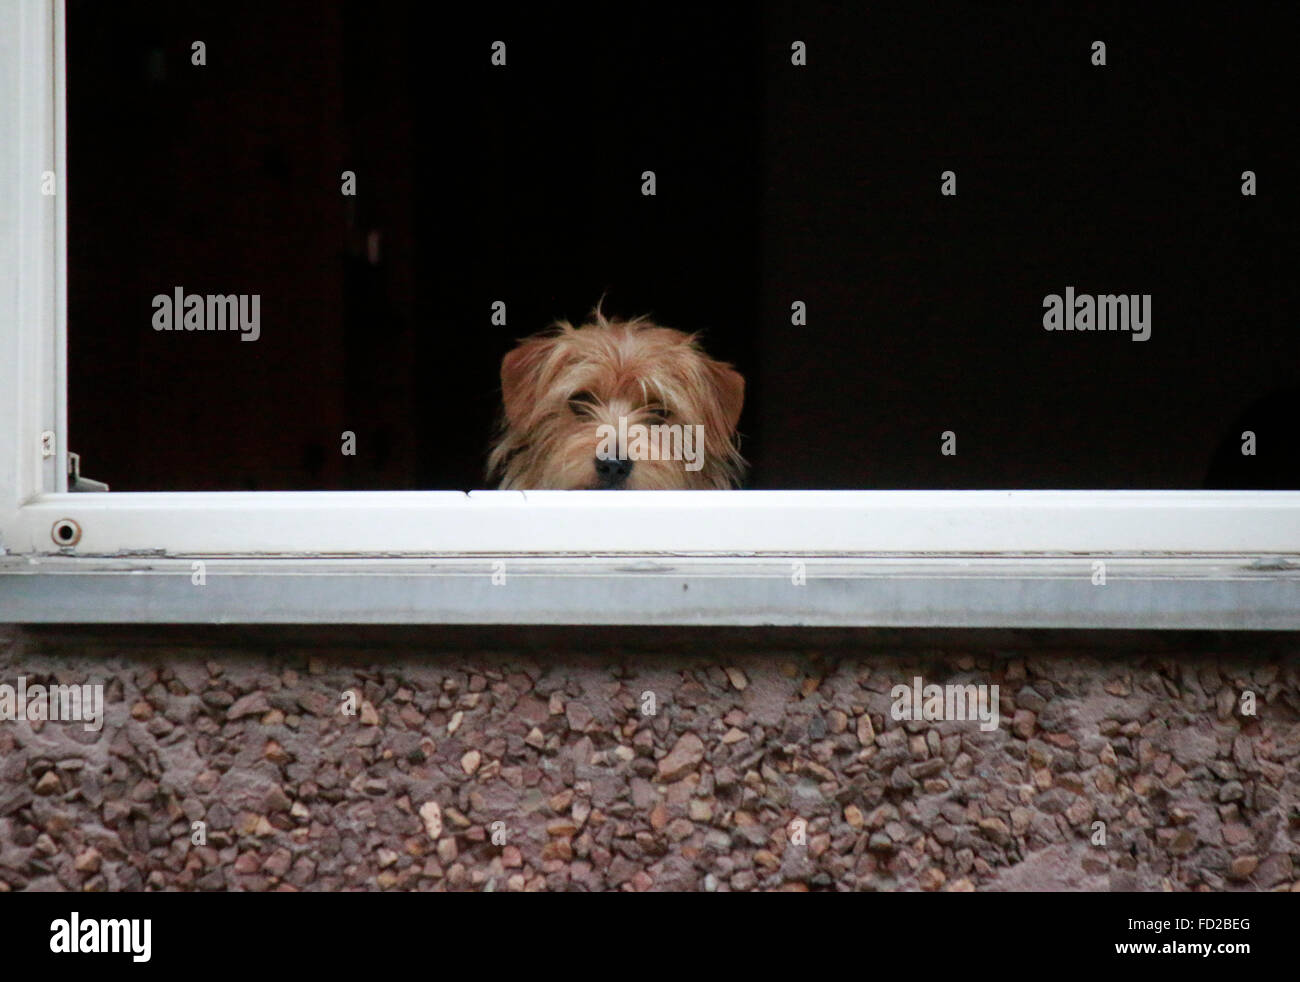 Hund , Berlin. - Stock Image